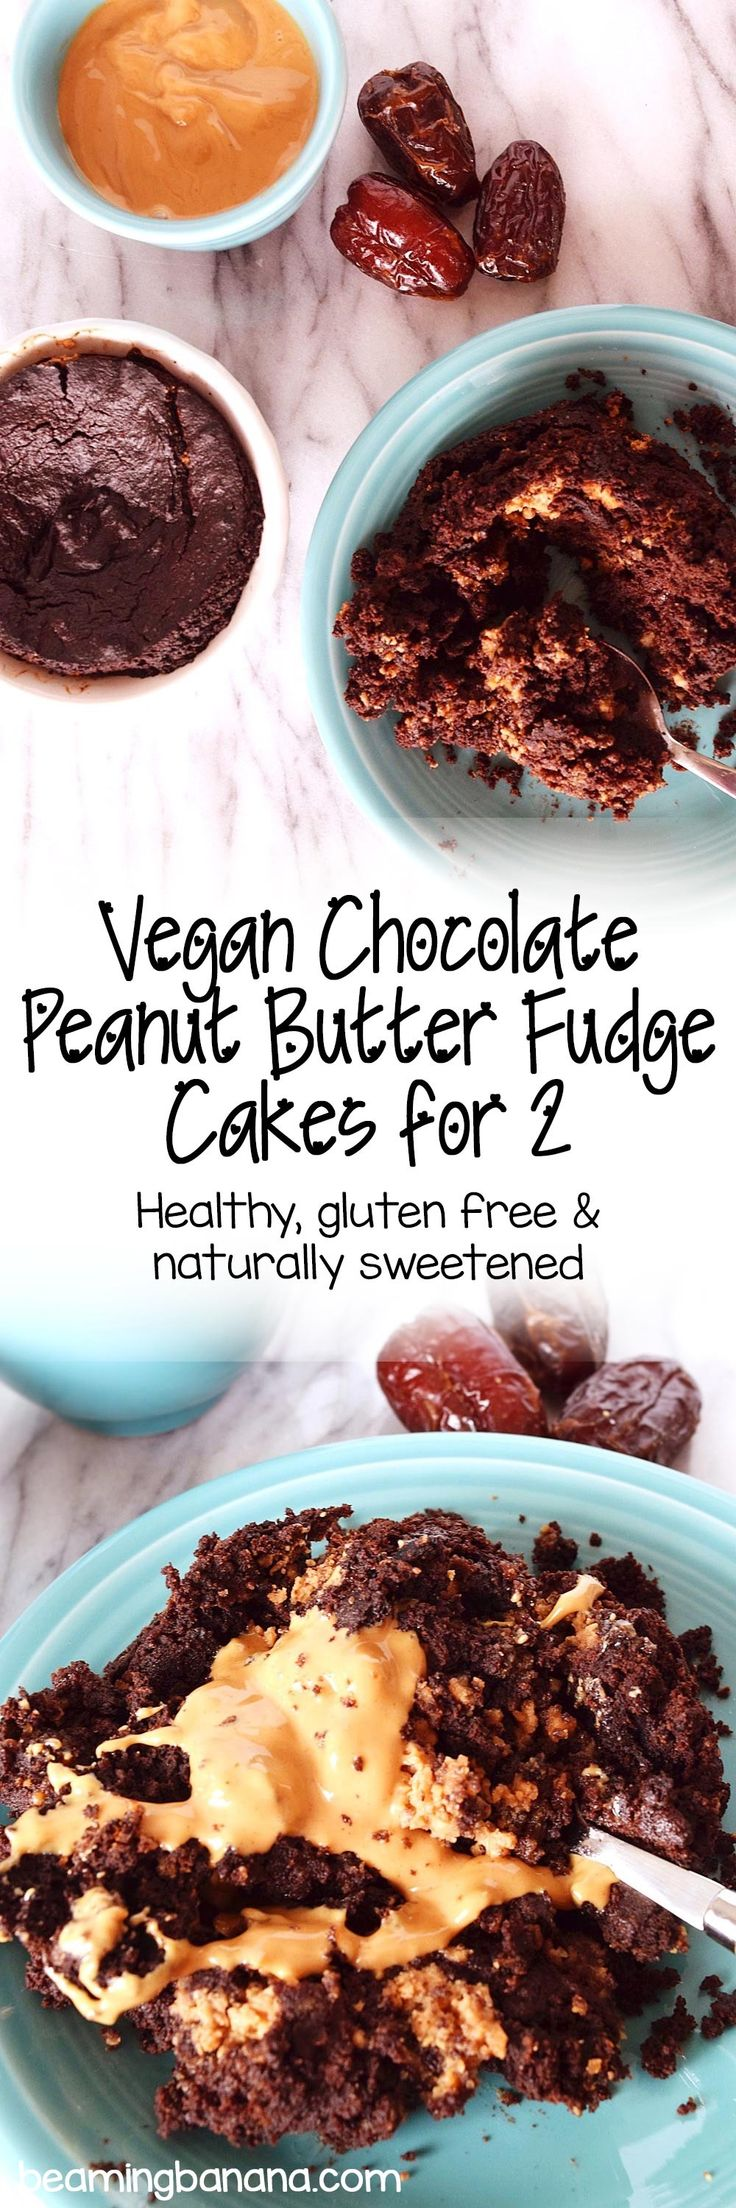 Rich chocolate cake with a fudgy peanut butter center! These vegan chocolate peanut butter fudge cakes are the perfect 2 person portion recipe! Plus, they're gluten free and refined sugar free.